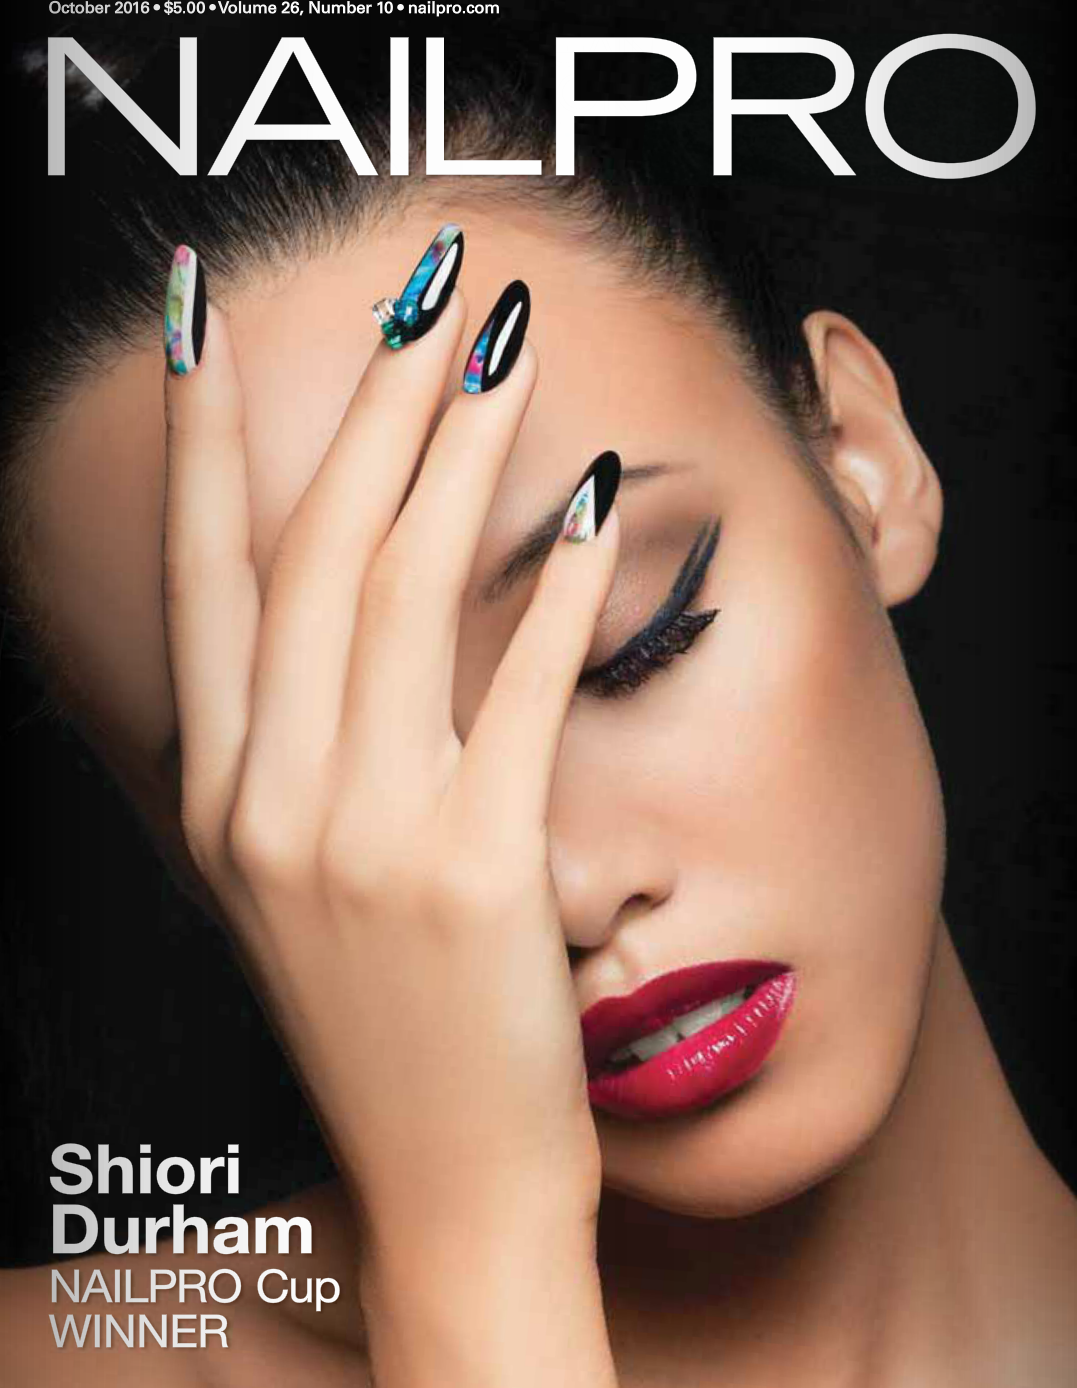 NAILPRO magazine 2016 October issue